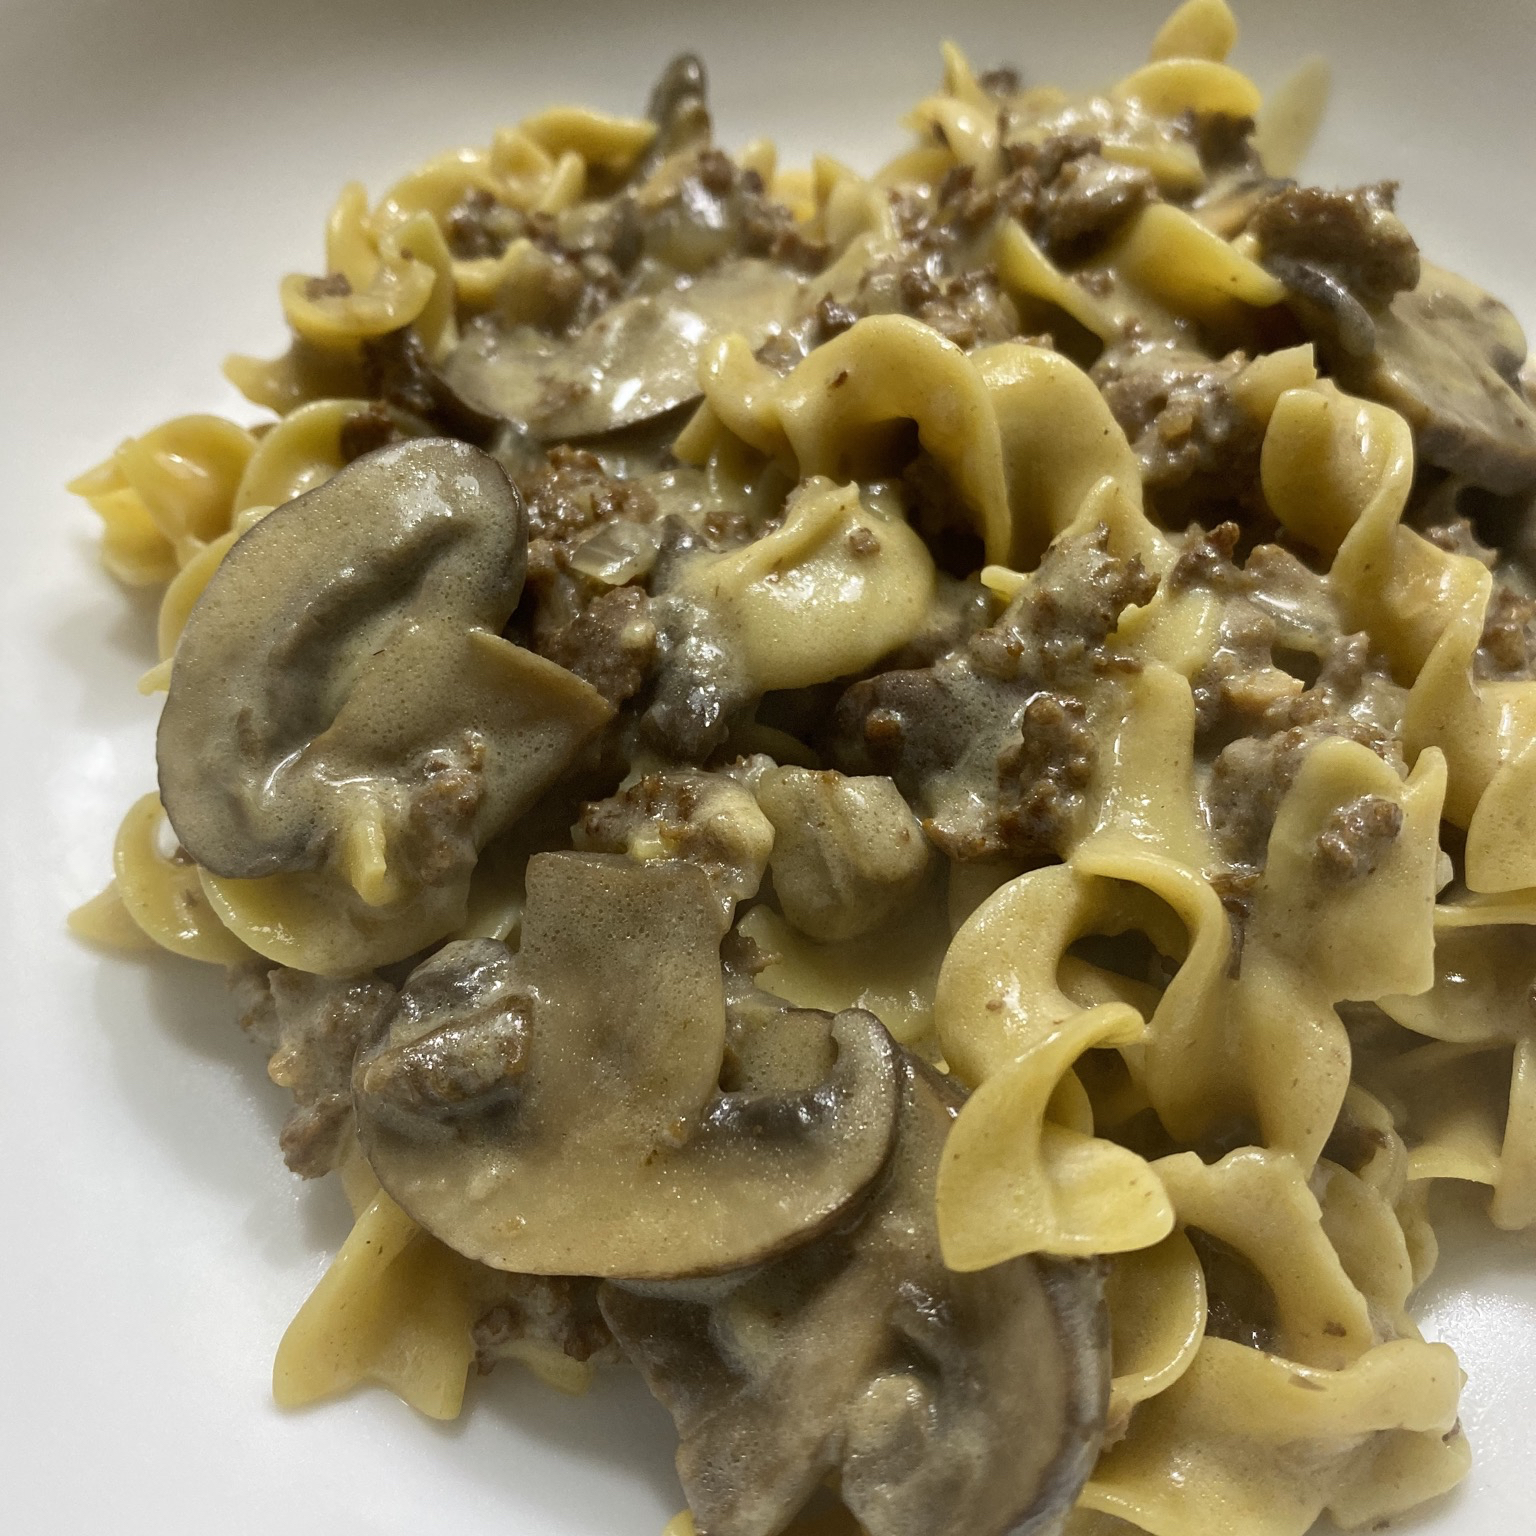 """Here's a quick-and-easy beef stroganoff that's prepped, cooked, and on the table in just 40 minutes. """"This is a guaranteed crowd-pleasing meal made in an Instant Pot®!"""" says peloquinswife. """"Homemade, delicious food instantly."""""""